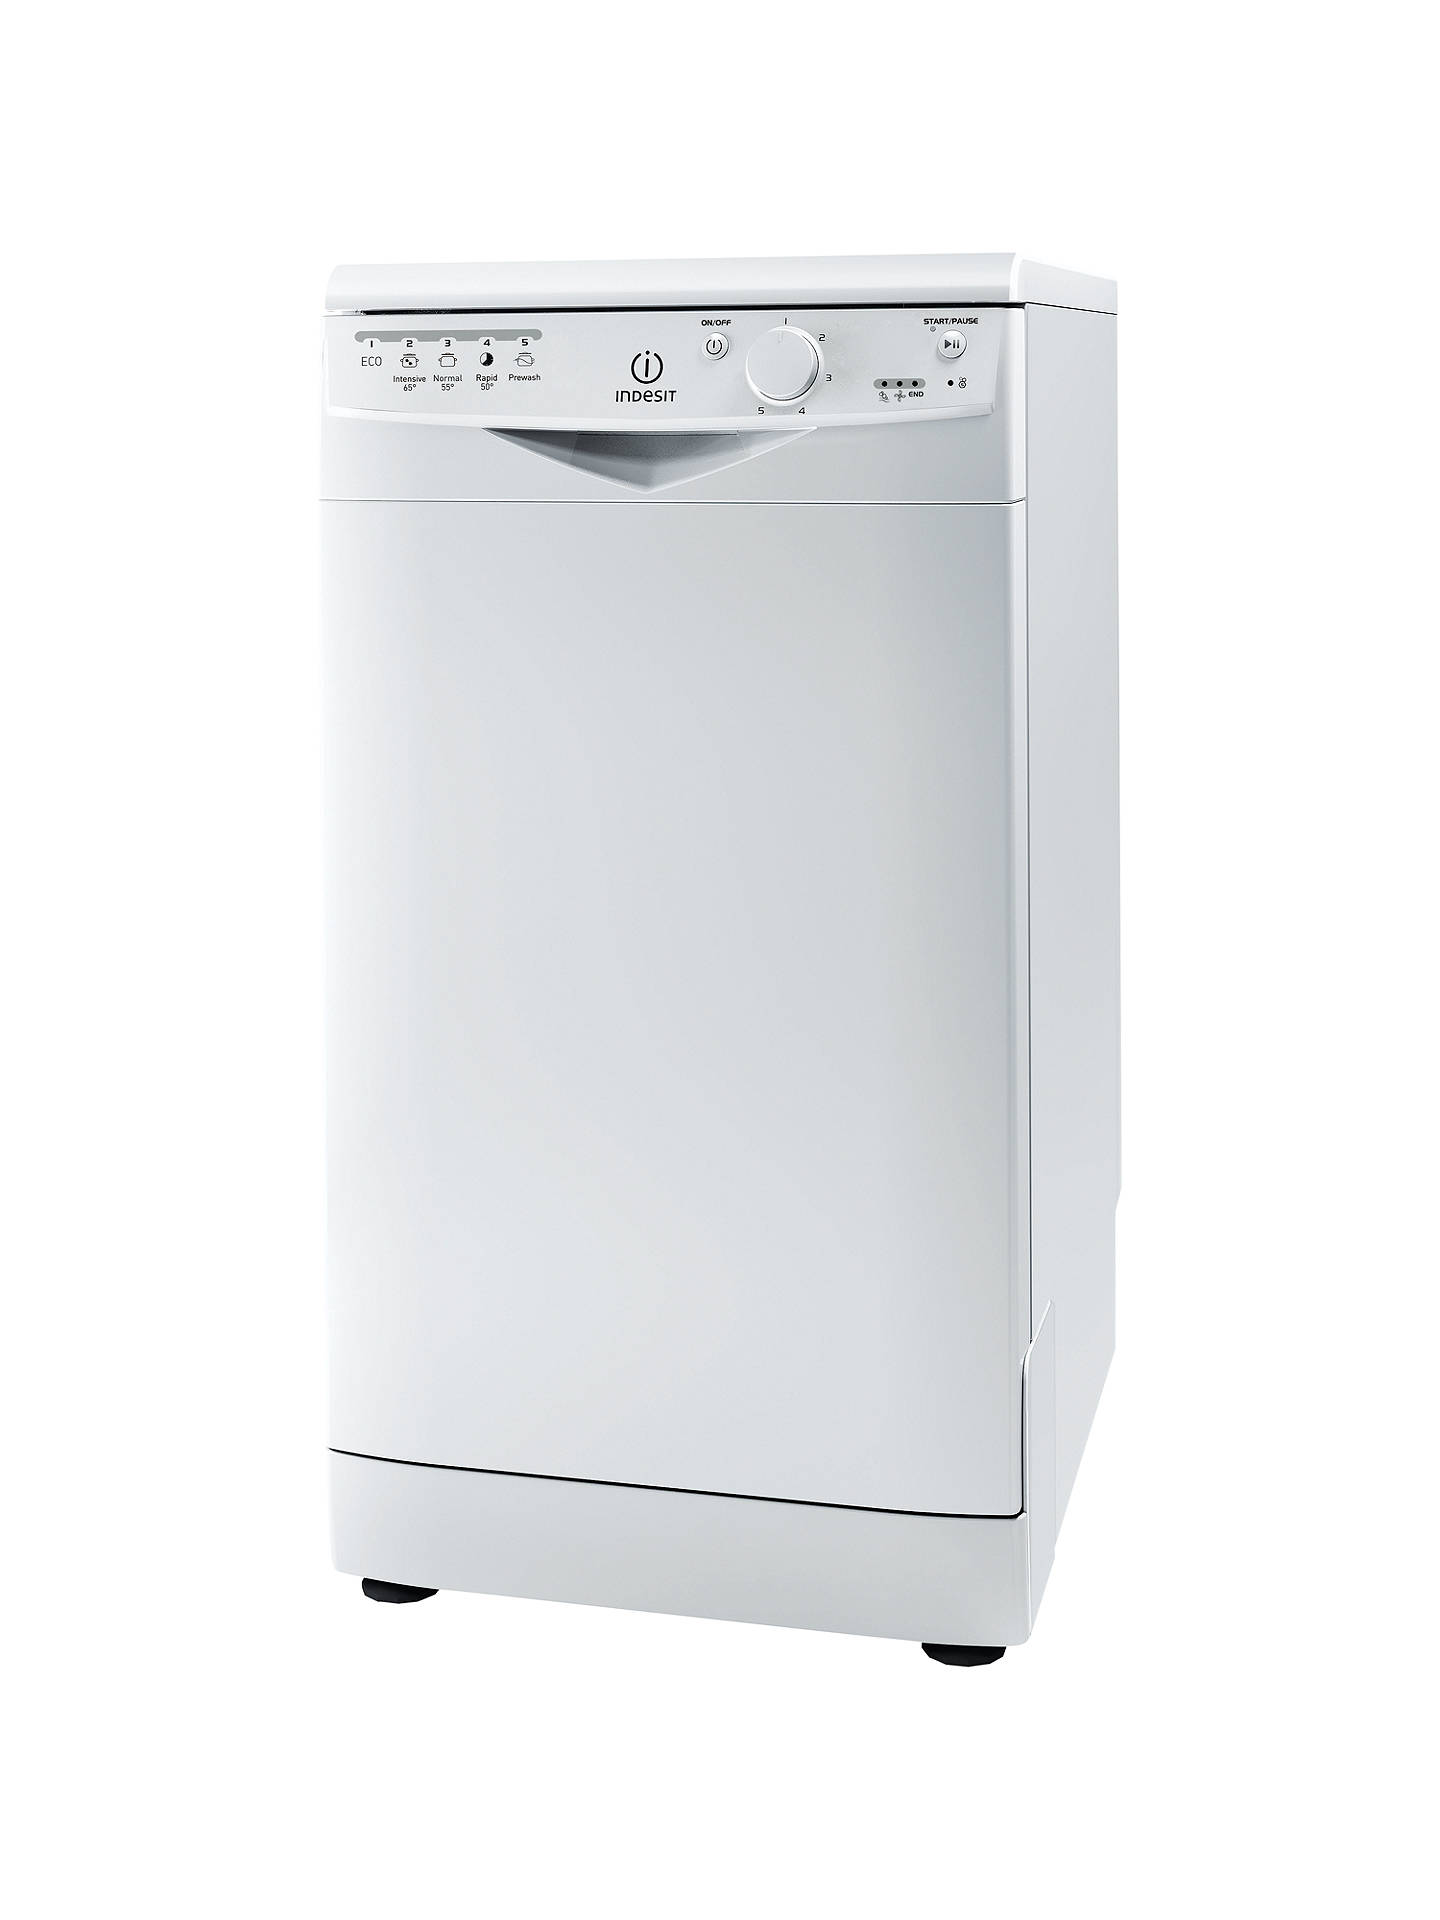 Dishwasher Indesit DSR 15B3 EN: reviews, technical specifications, comparison with competitors 64